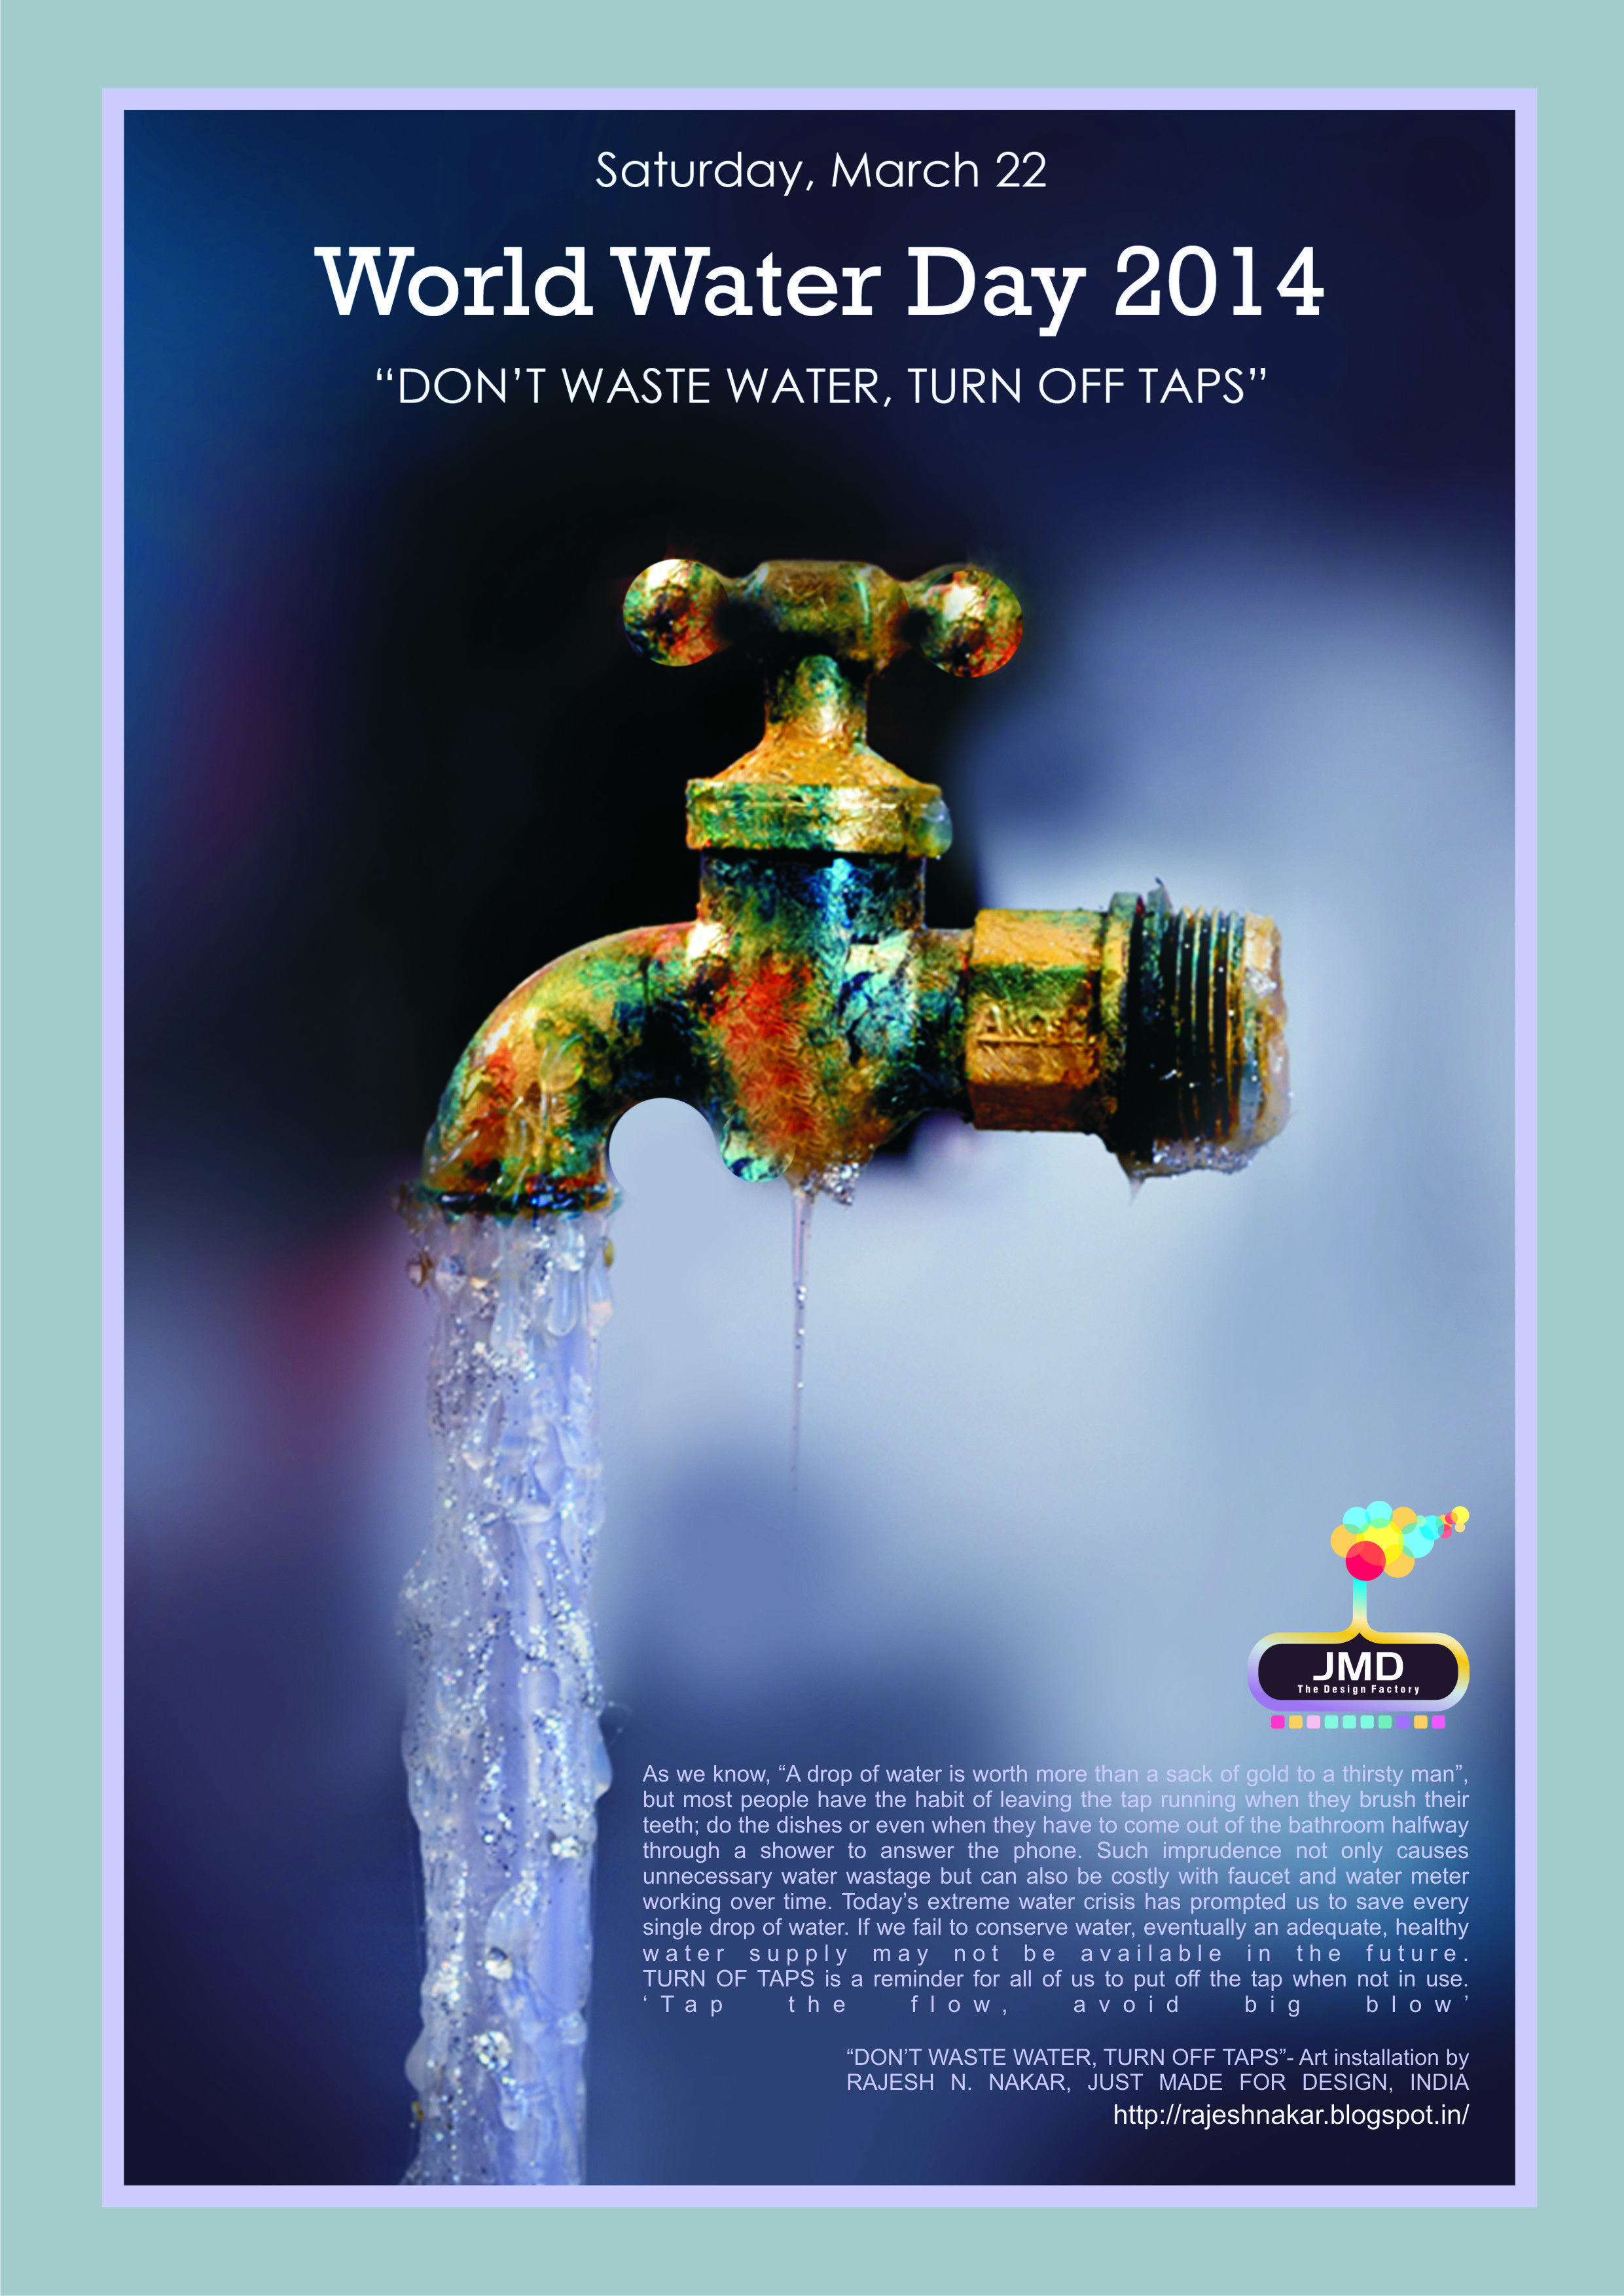 Poster design on save water - World Water Day 2014 I Used One Of My Art Installation Photographs To Design This Poster My Art Installation Don T Waste Water Turn Off Taps Is All